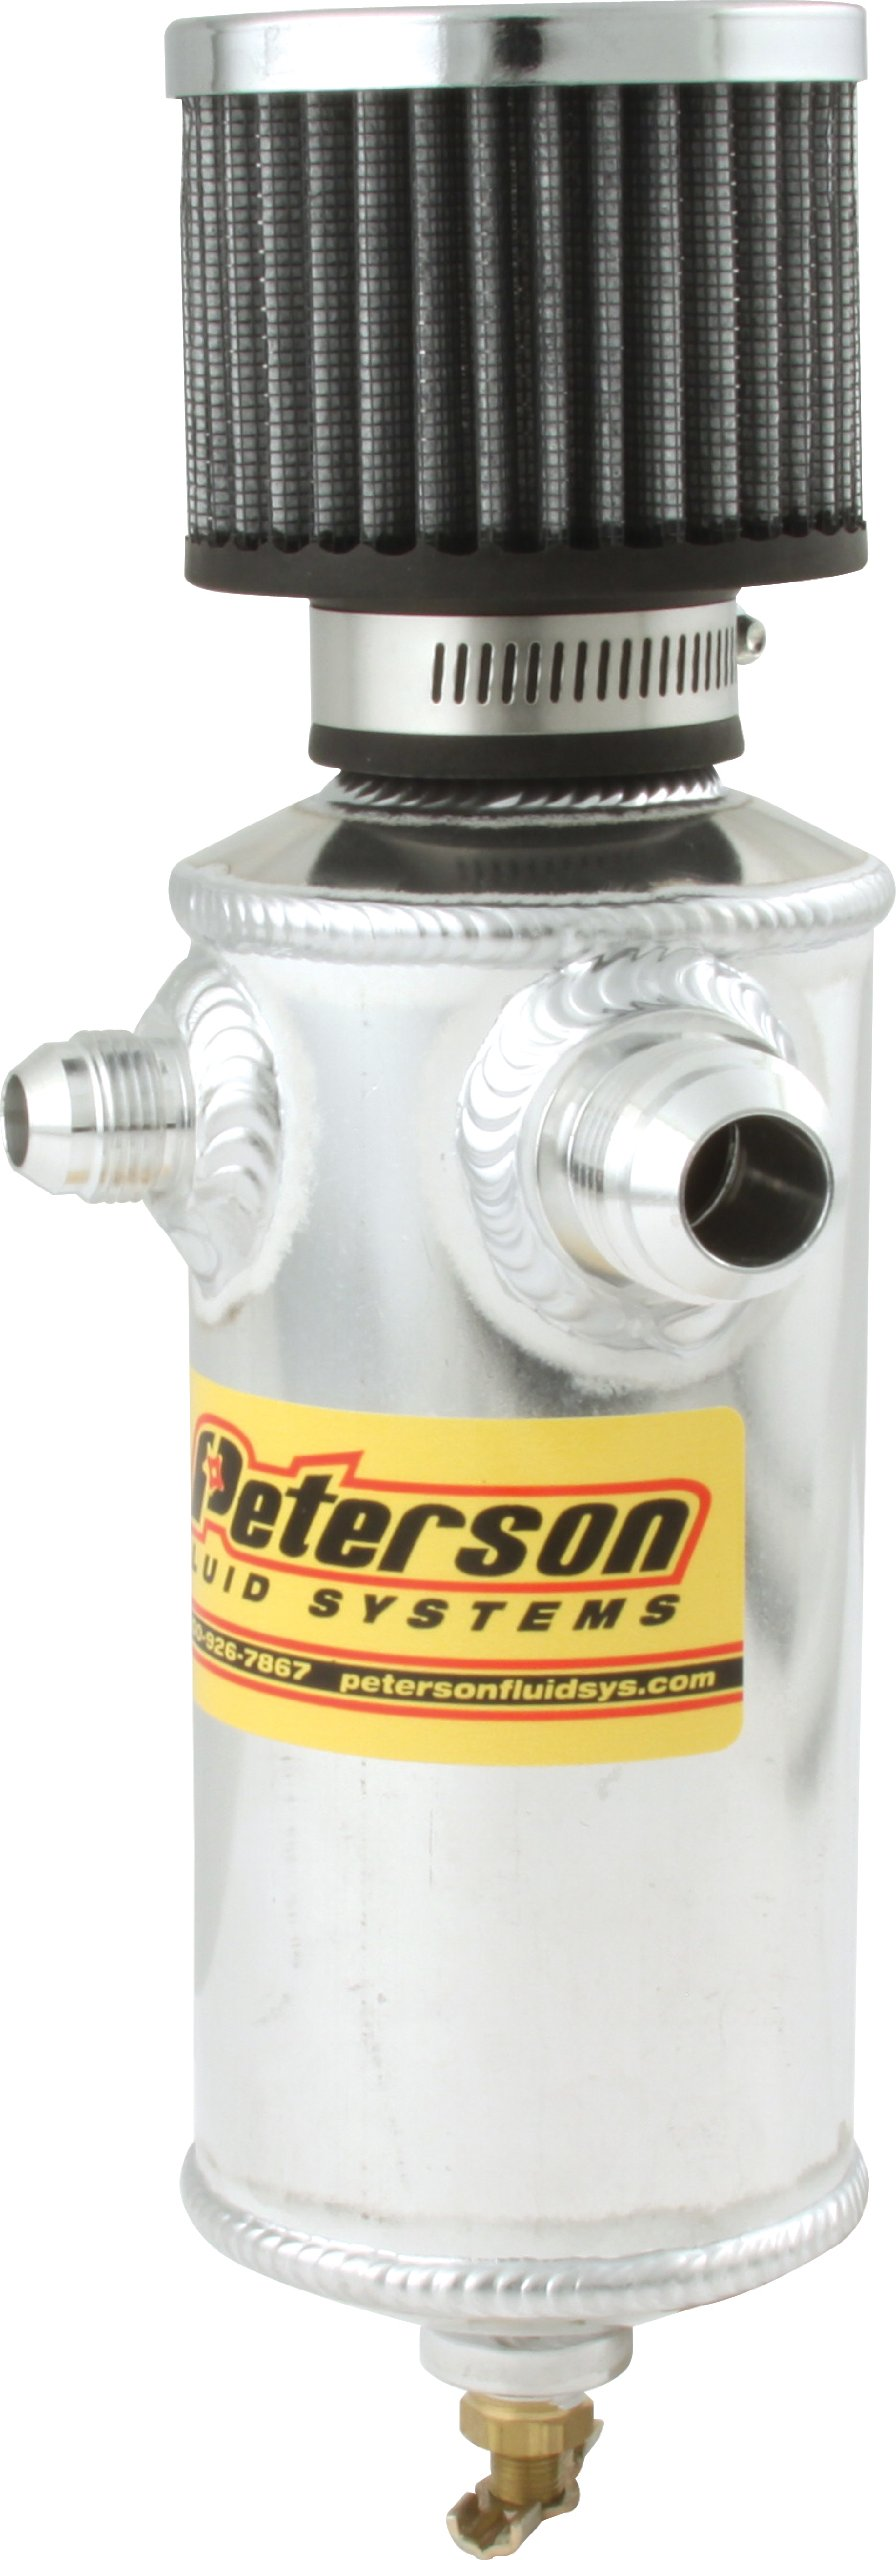 Peterson Fluid Systems 08-0410 Remote Breather Can with 2 Fittings by Peterson Fluid Systems